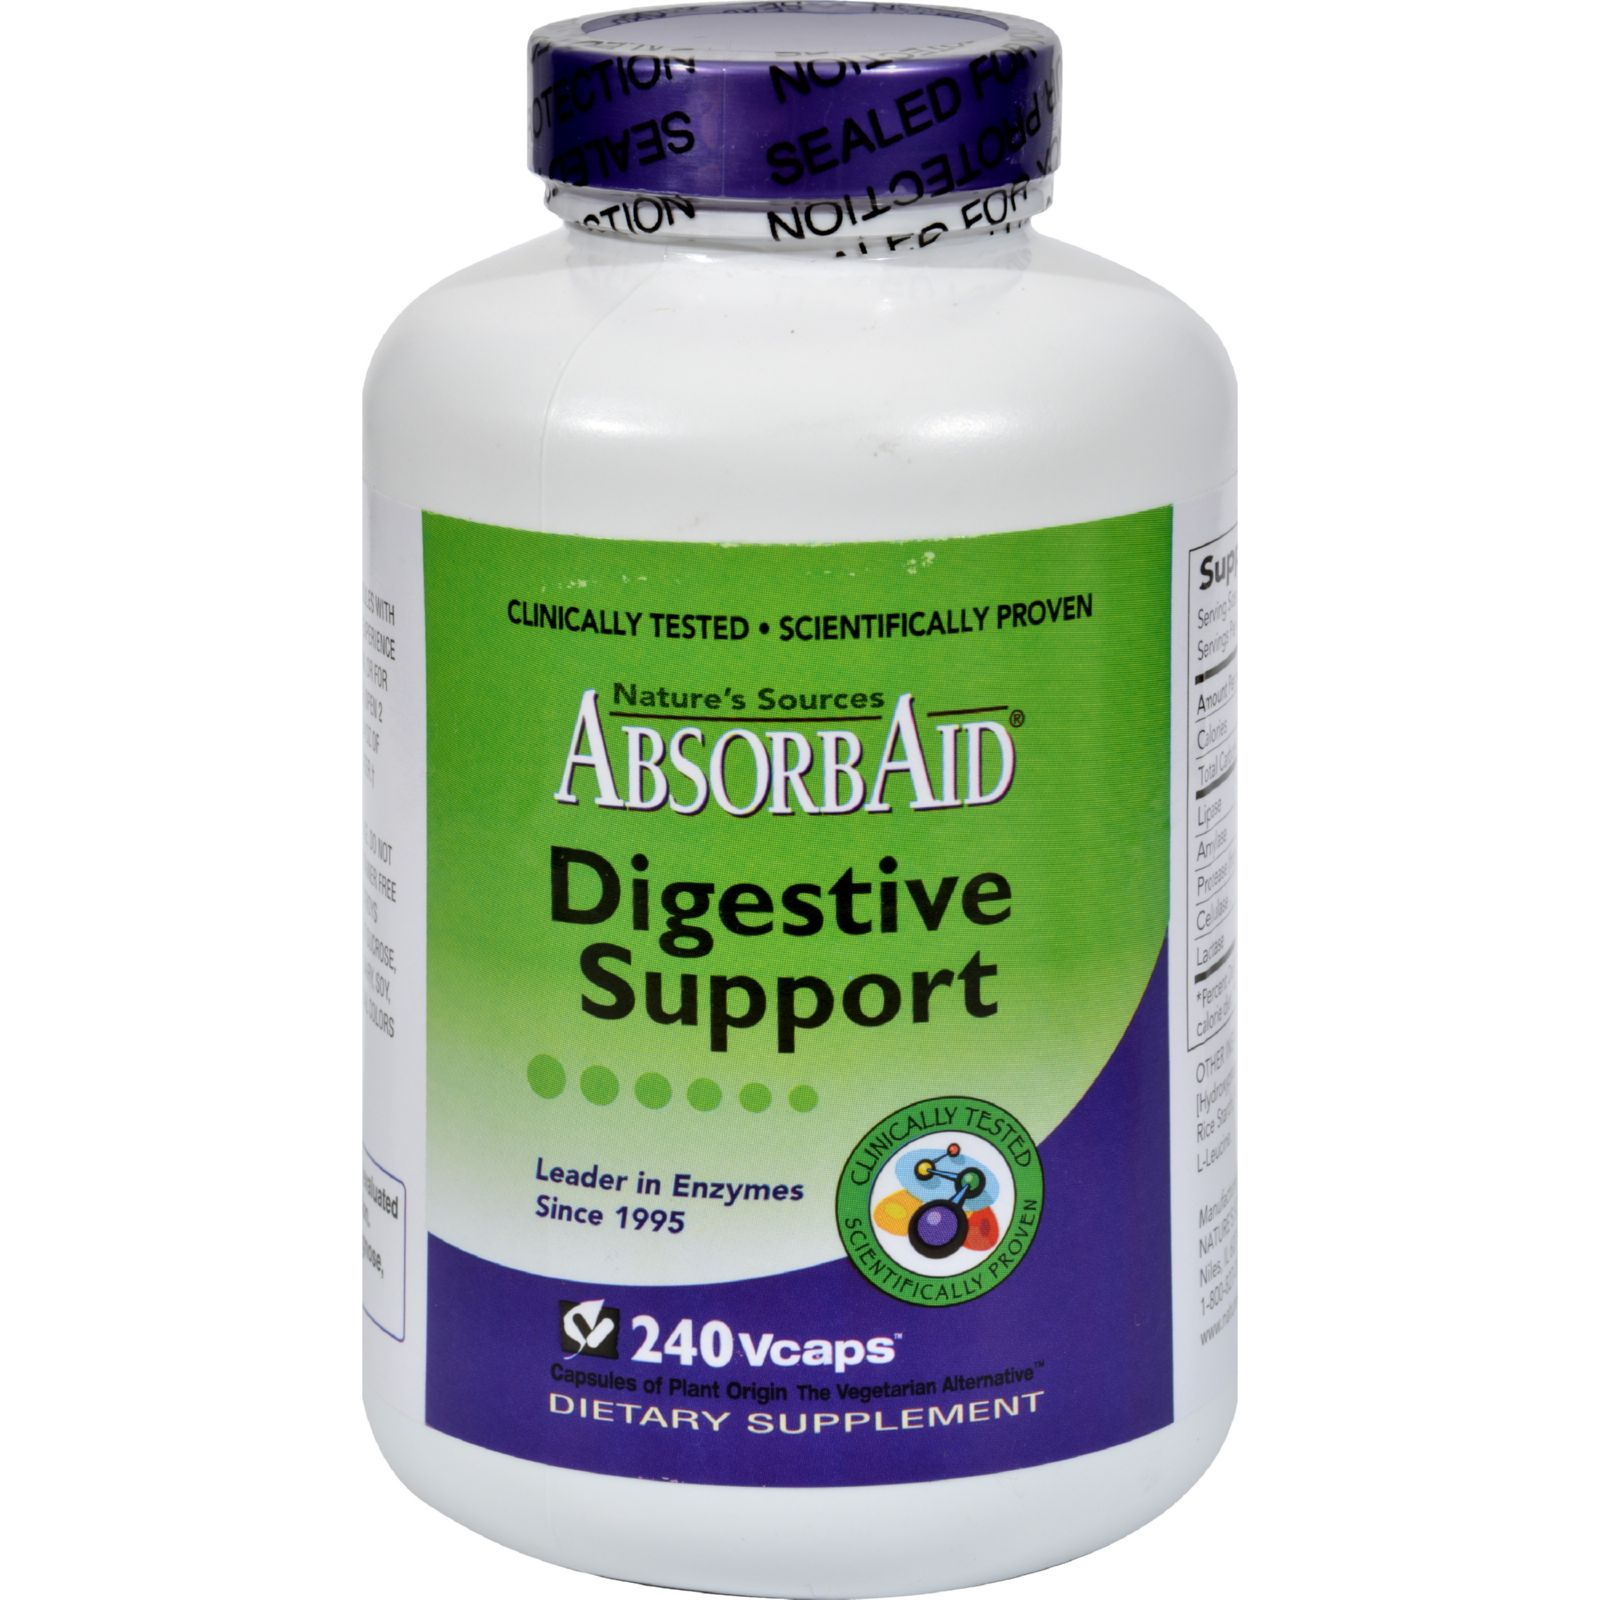 AbsorbAid Digestive Support - 240 Vcaps - (Pack of 2)